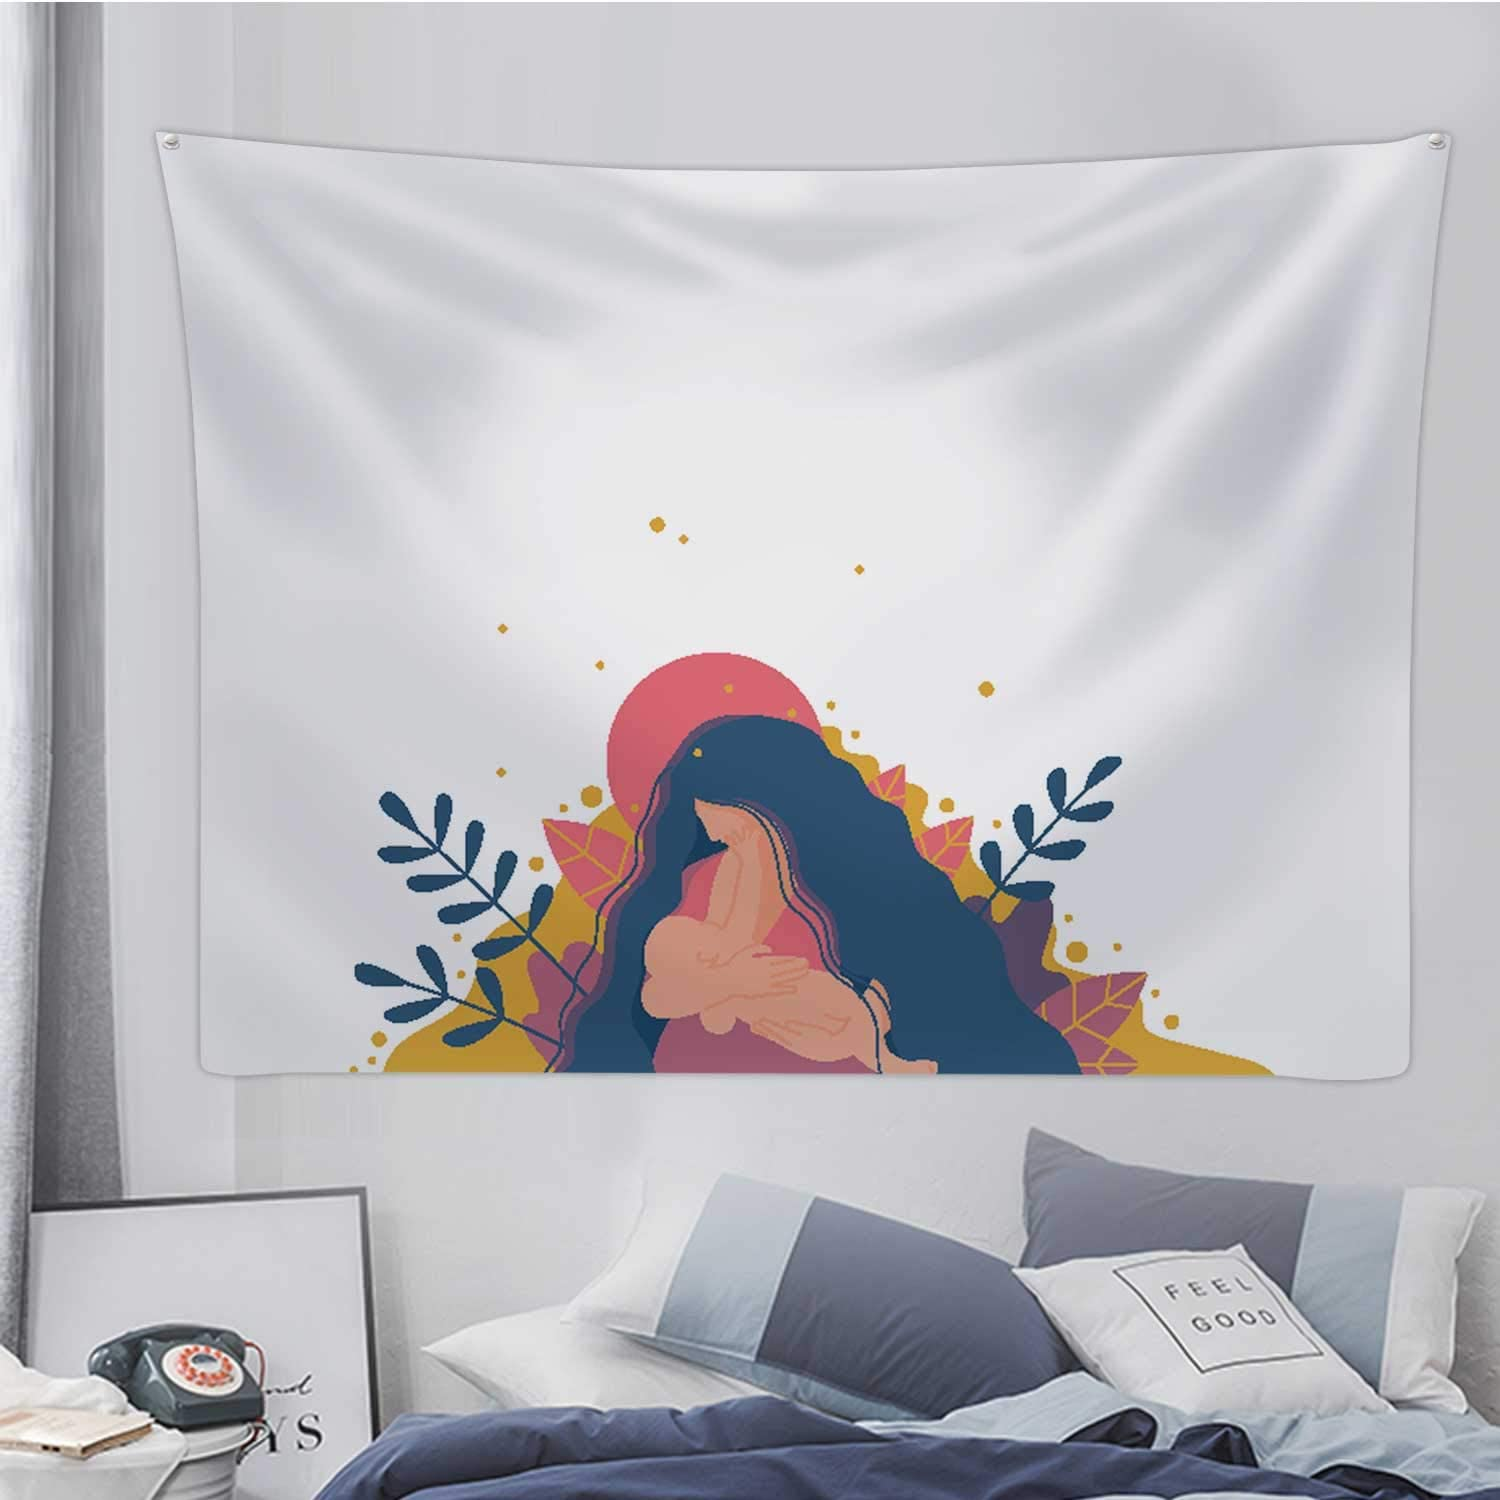 Mother Breastfeeding Her Newborn Baby.Flat Design of Concept,Tapestry Wall Hanging Wall Art for Living Room Dorm Decor 90.5X59.1in